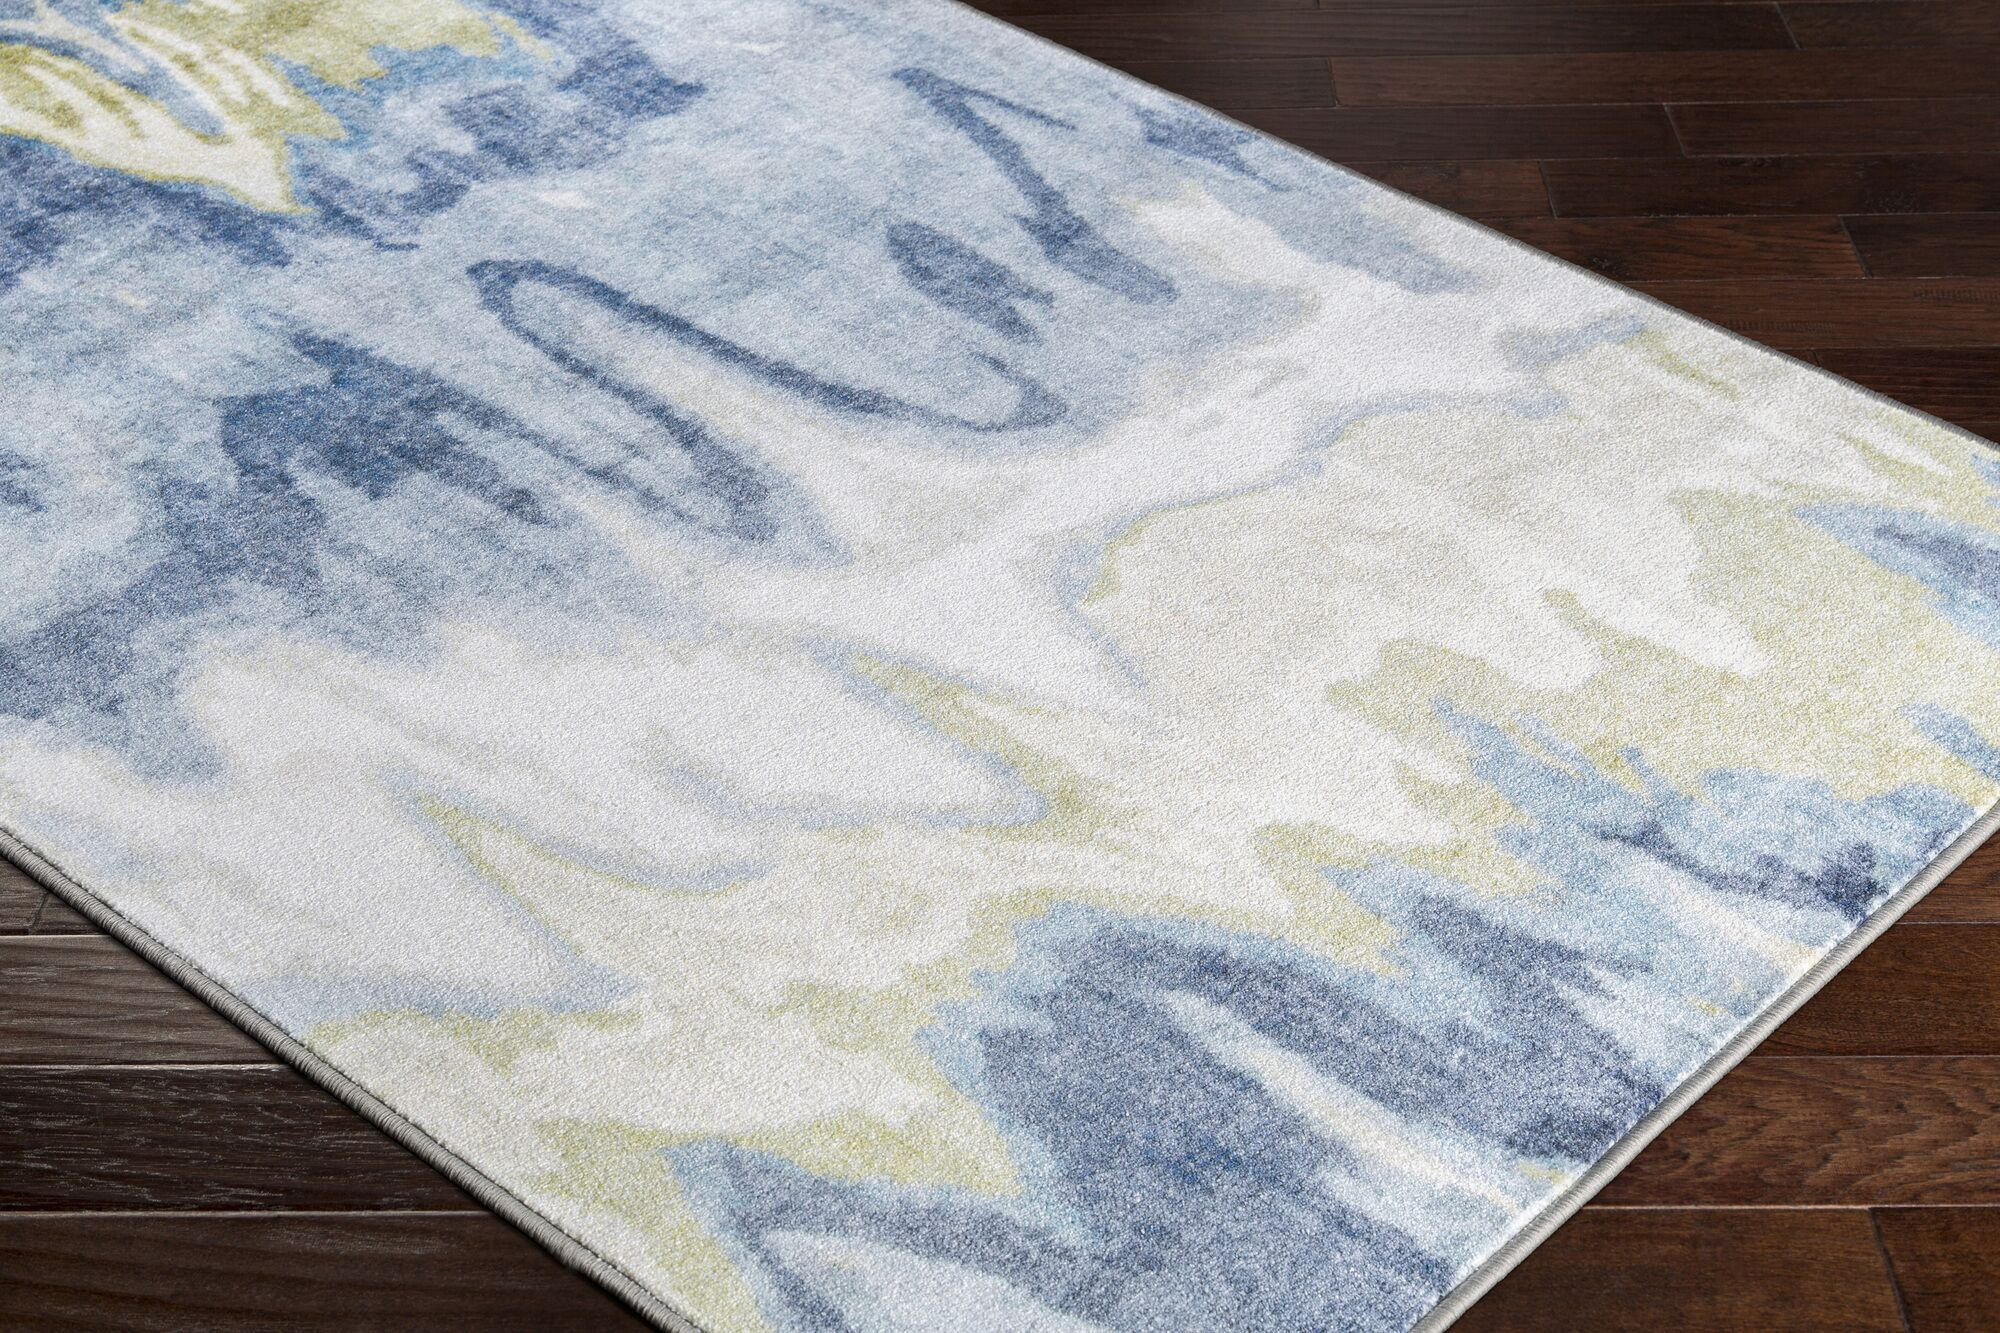 Dilbeck Abstract Olive/White Area Rug Rug Size: Rectangle 7'10